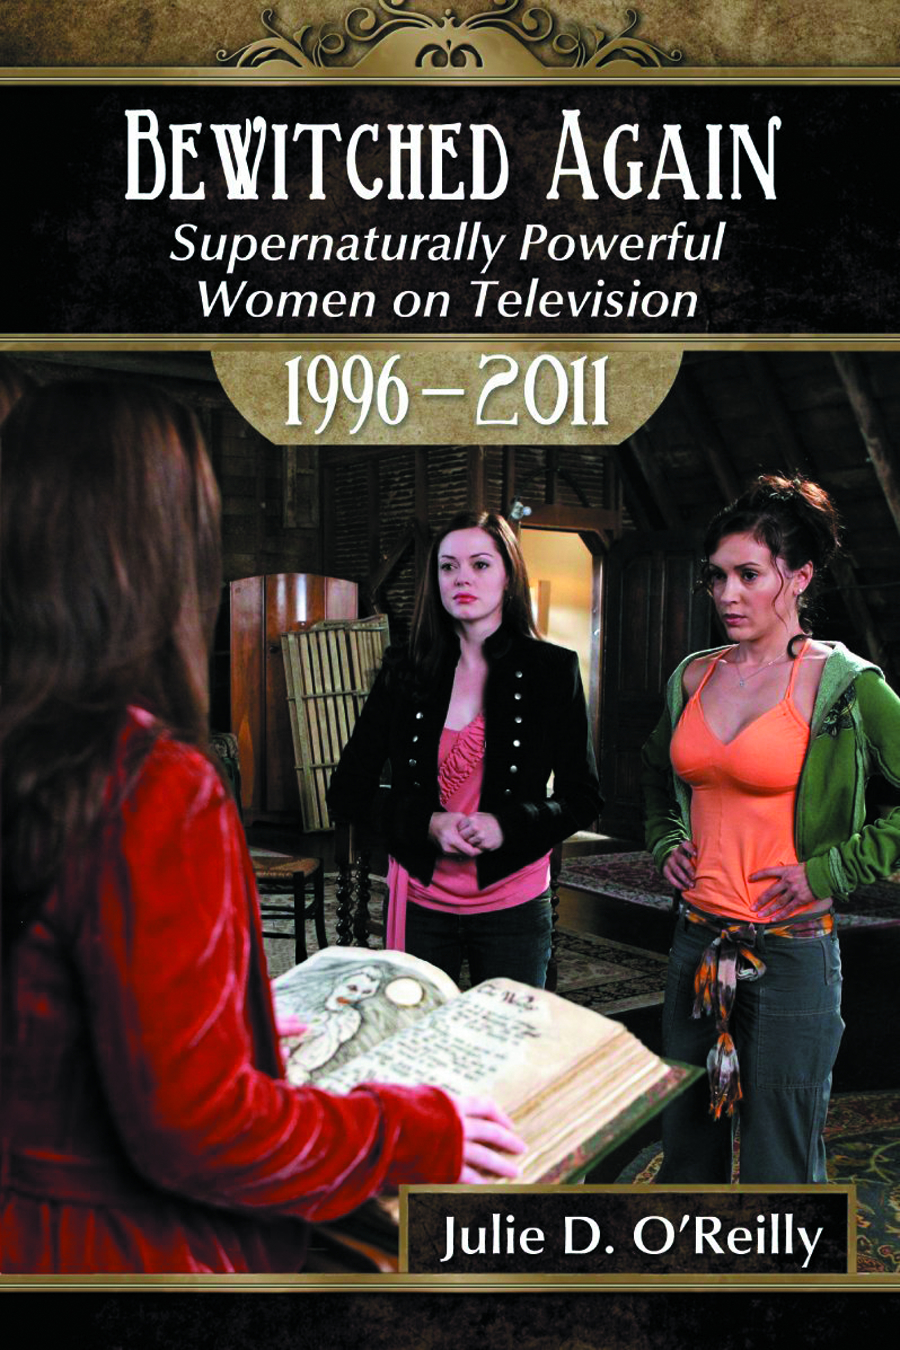 BEWITCHED AGAIN SUPERNATURALLY POWERFUL WOMEN ON TV